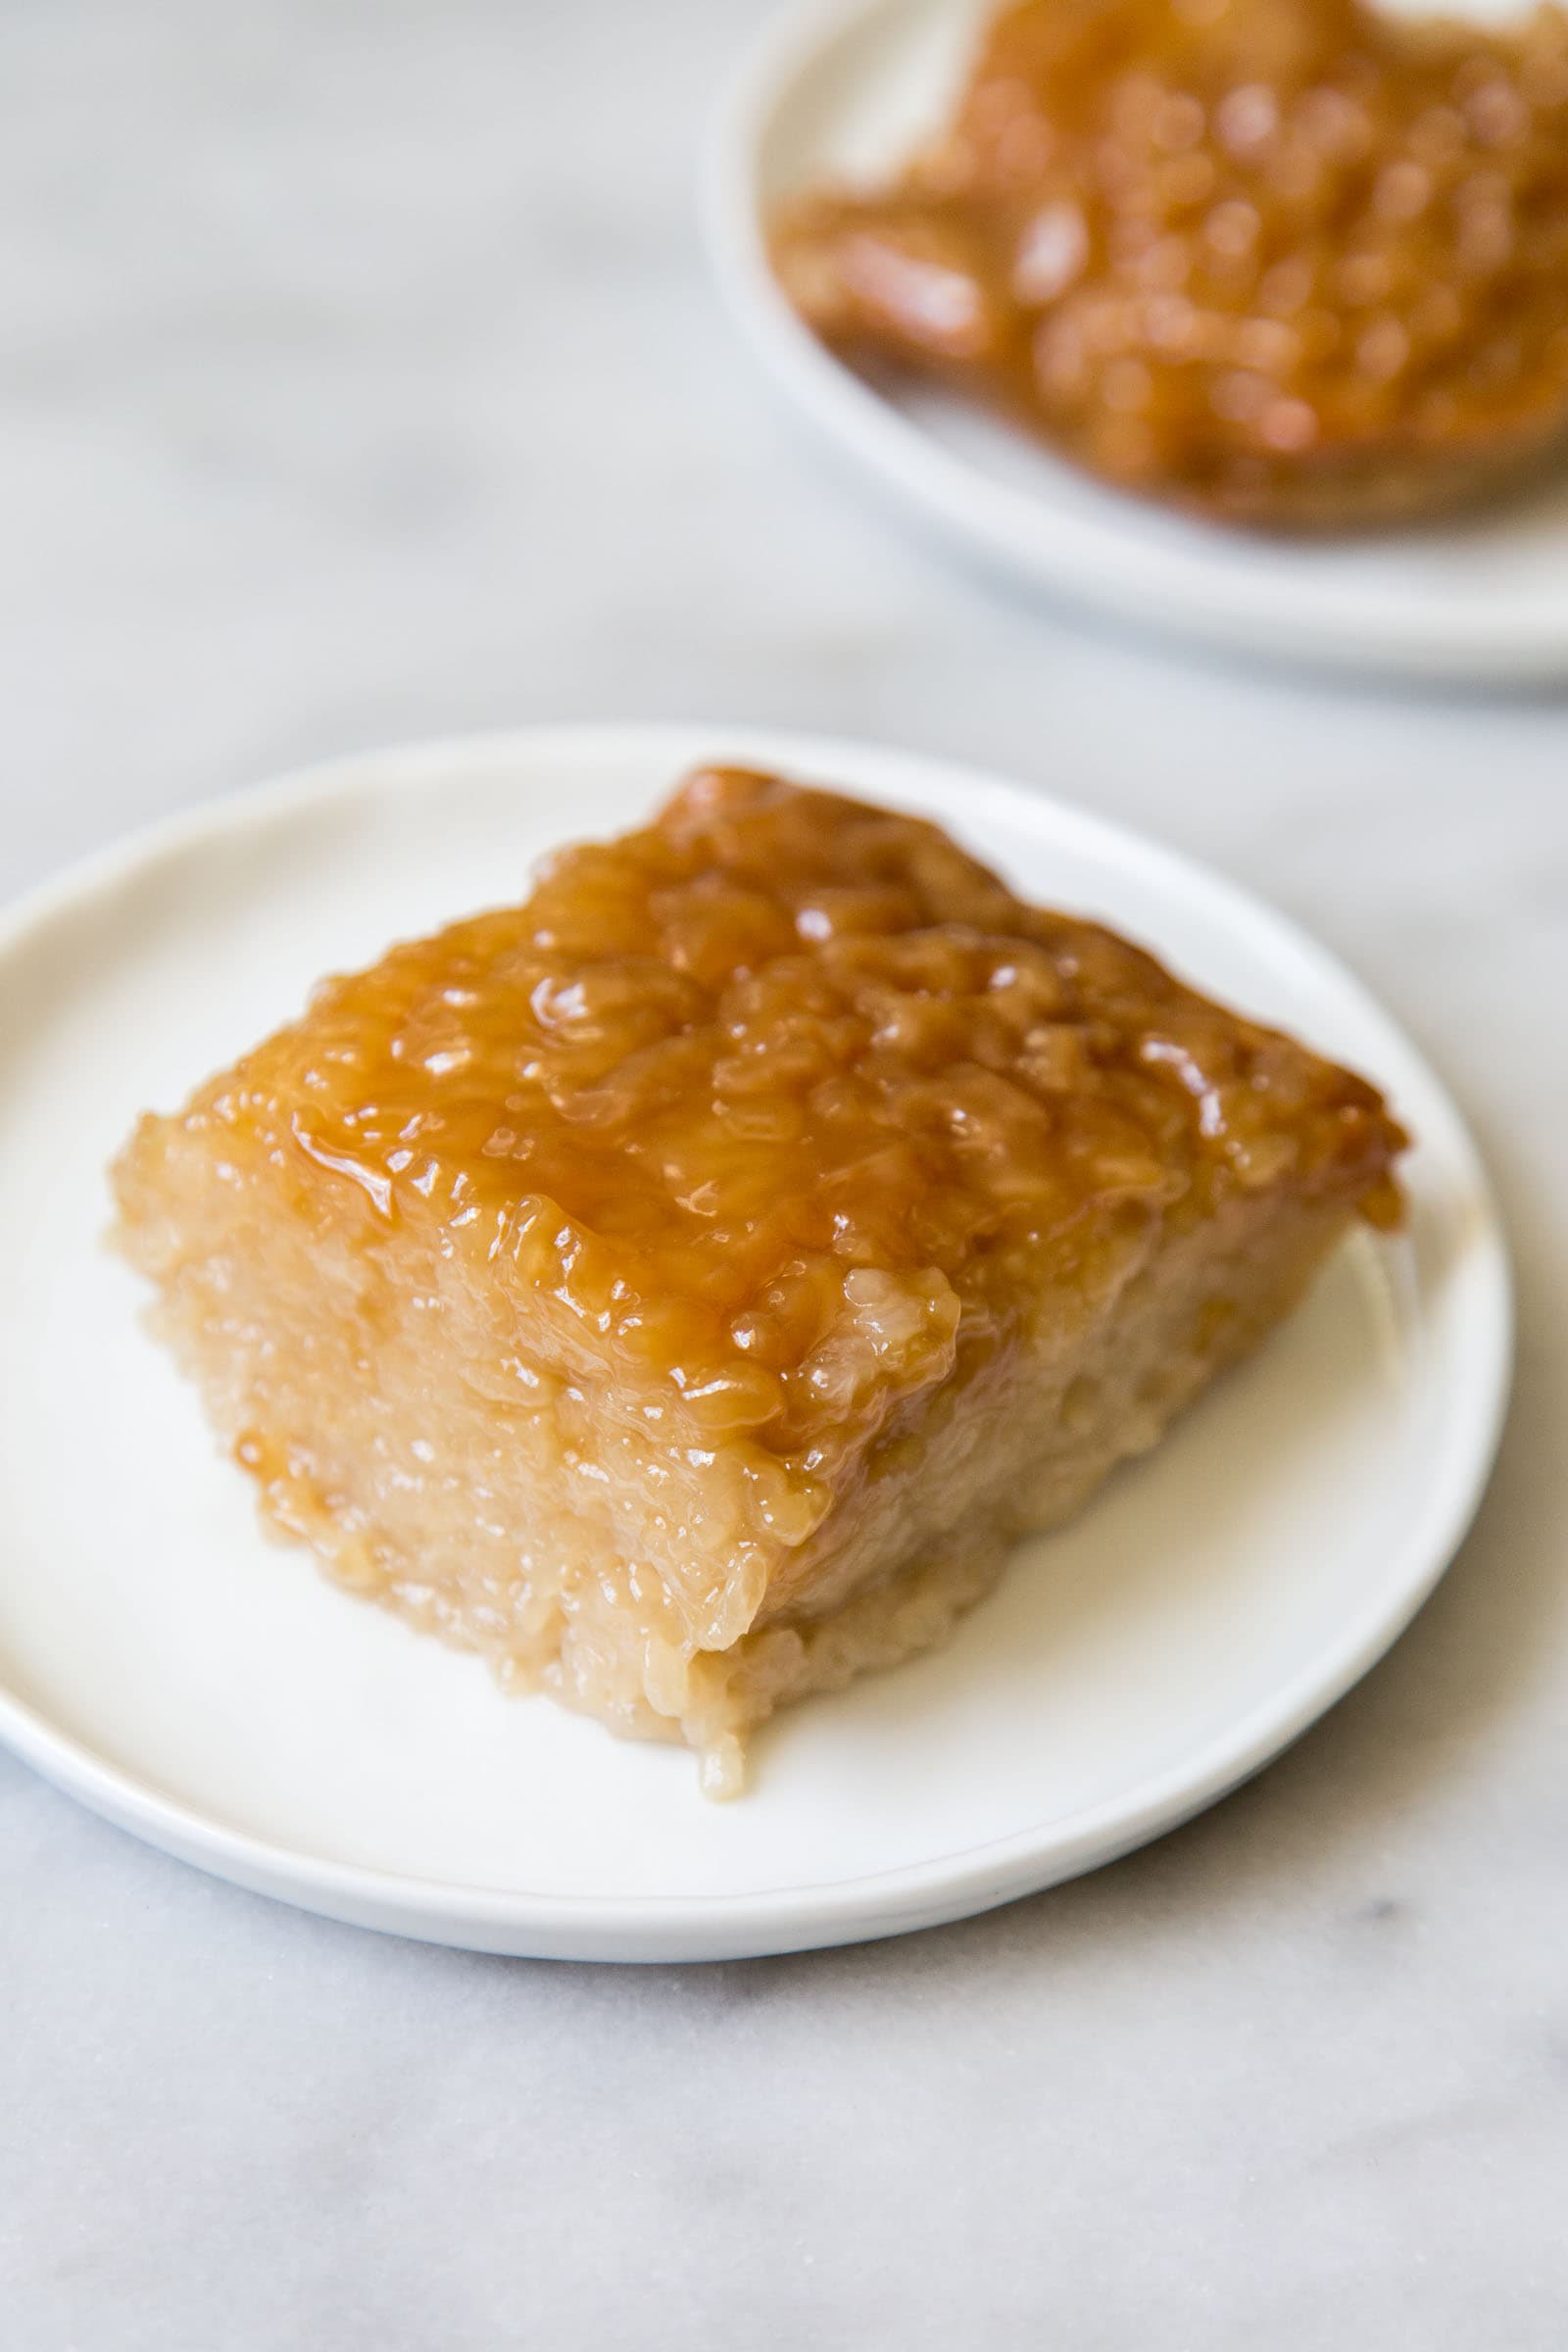 Biko (Filipino Sticky Rice Cake)